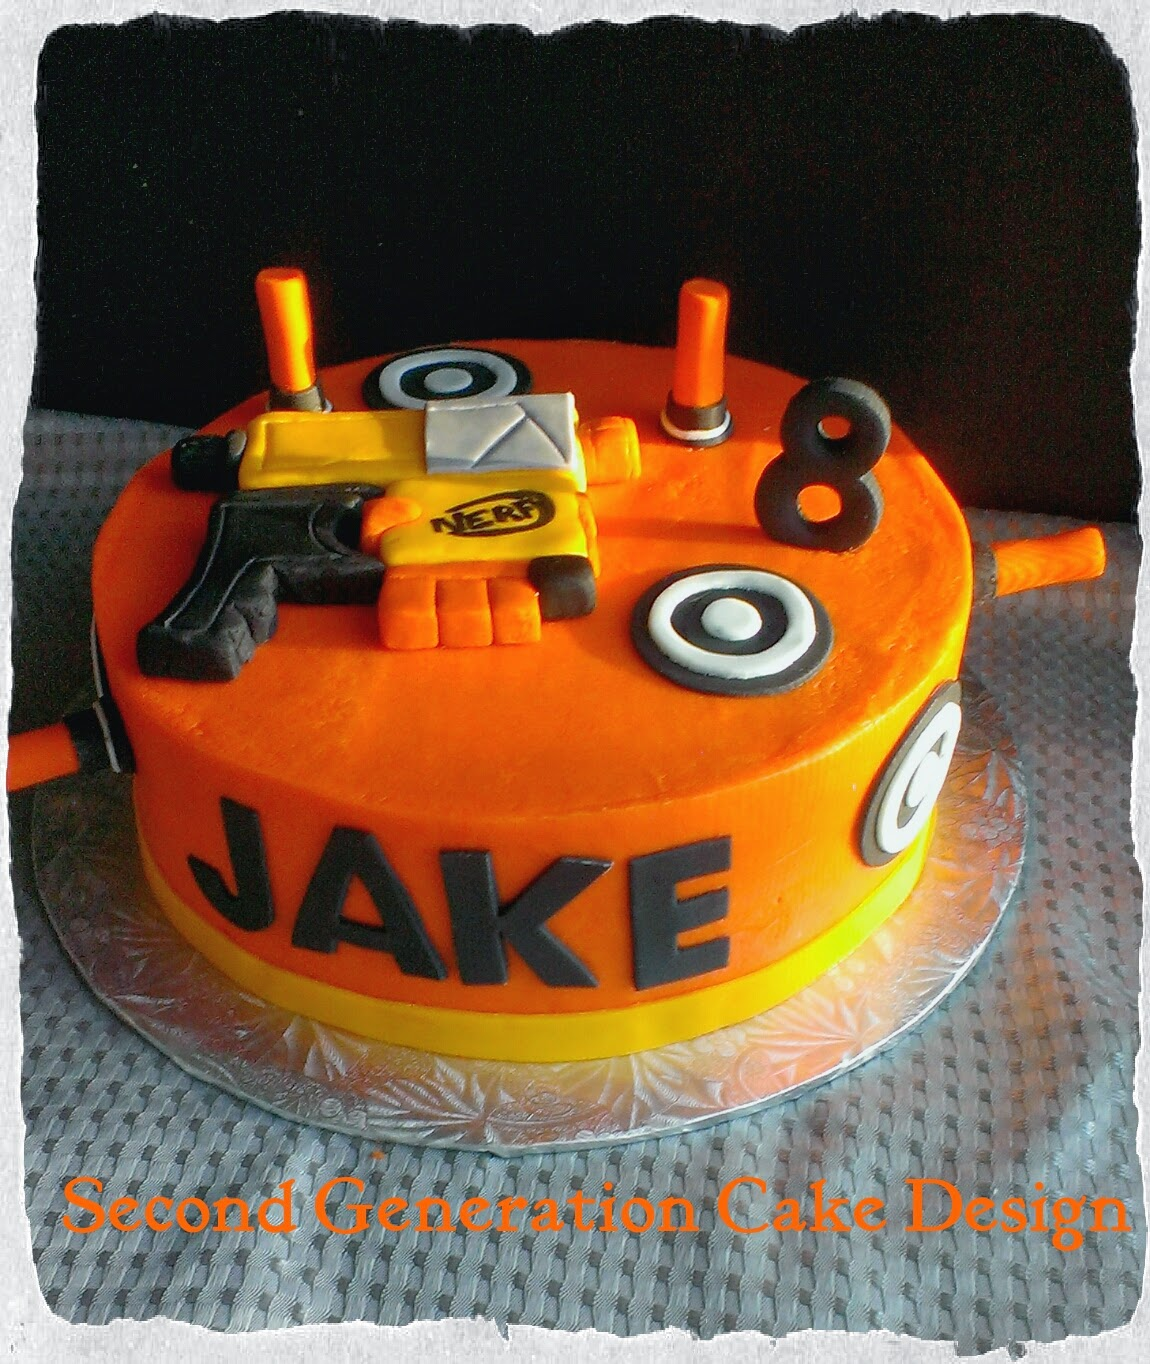 Second Generation Cake Design Nerf Gun Birthday Cake